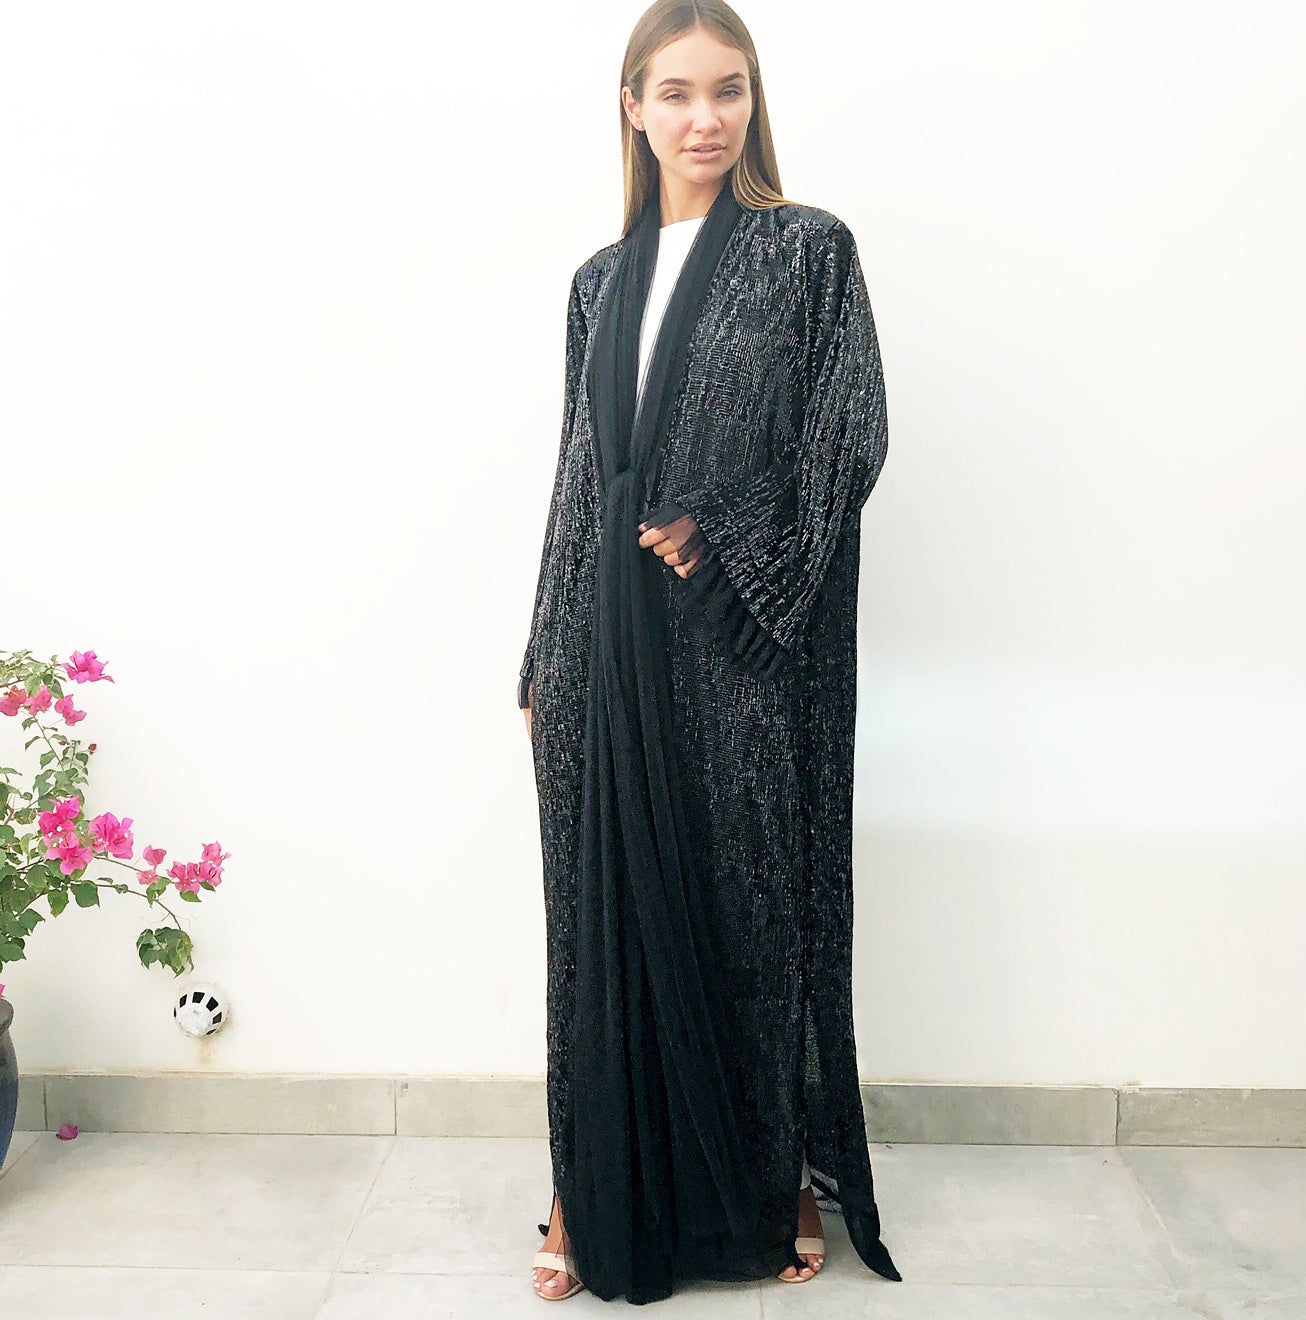 AW18 BLACK SEQUINS EVENING ABAYA WITH TULLE DETAILING